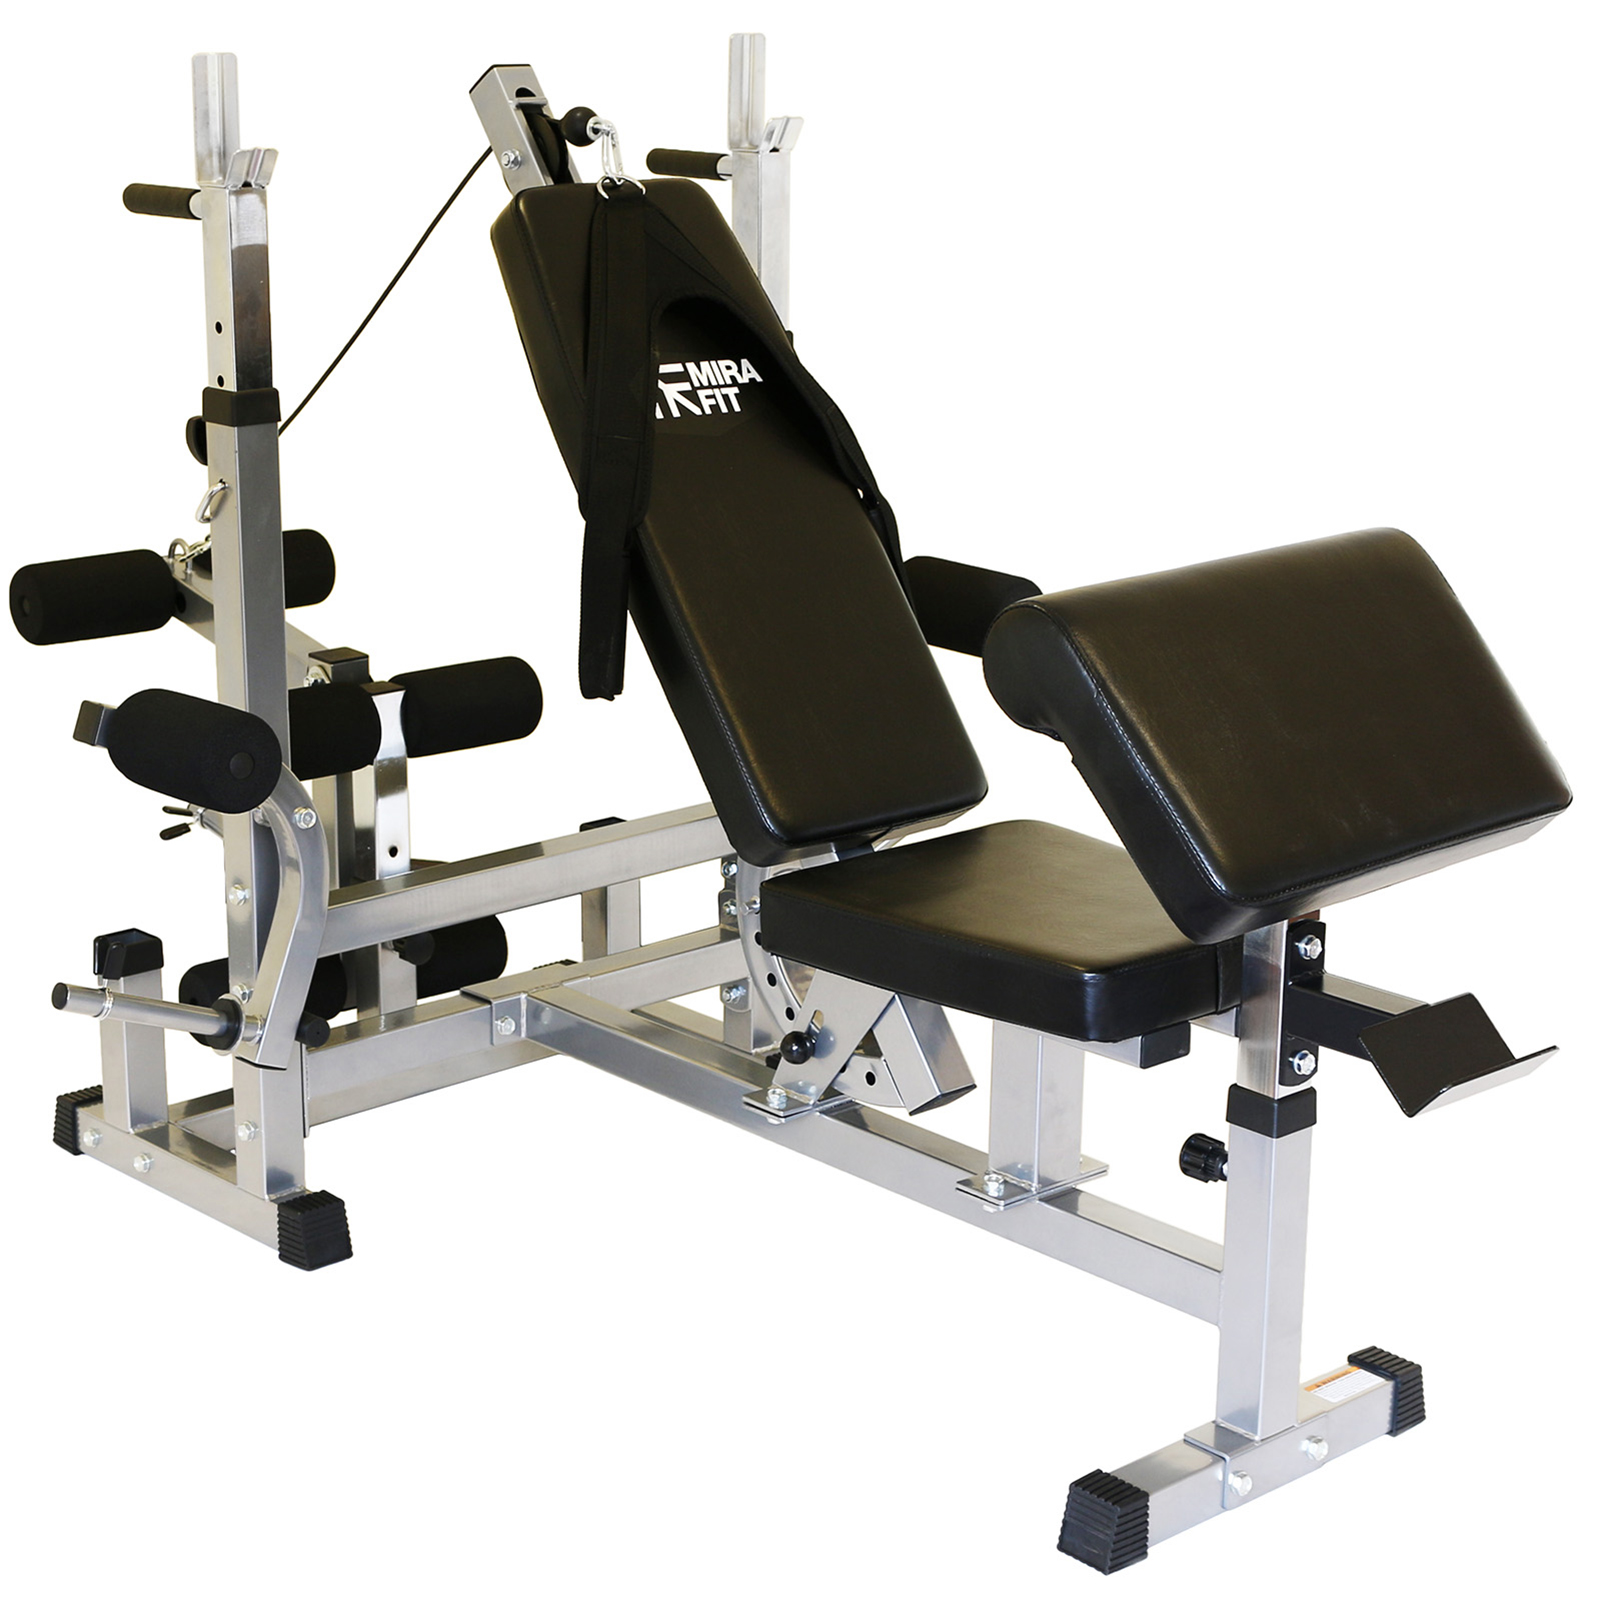 Mirafit hd adjustable weight bench home multi gym with dip